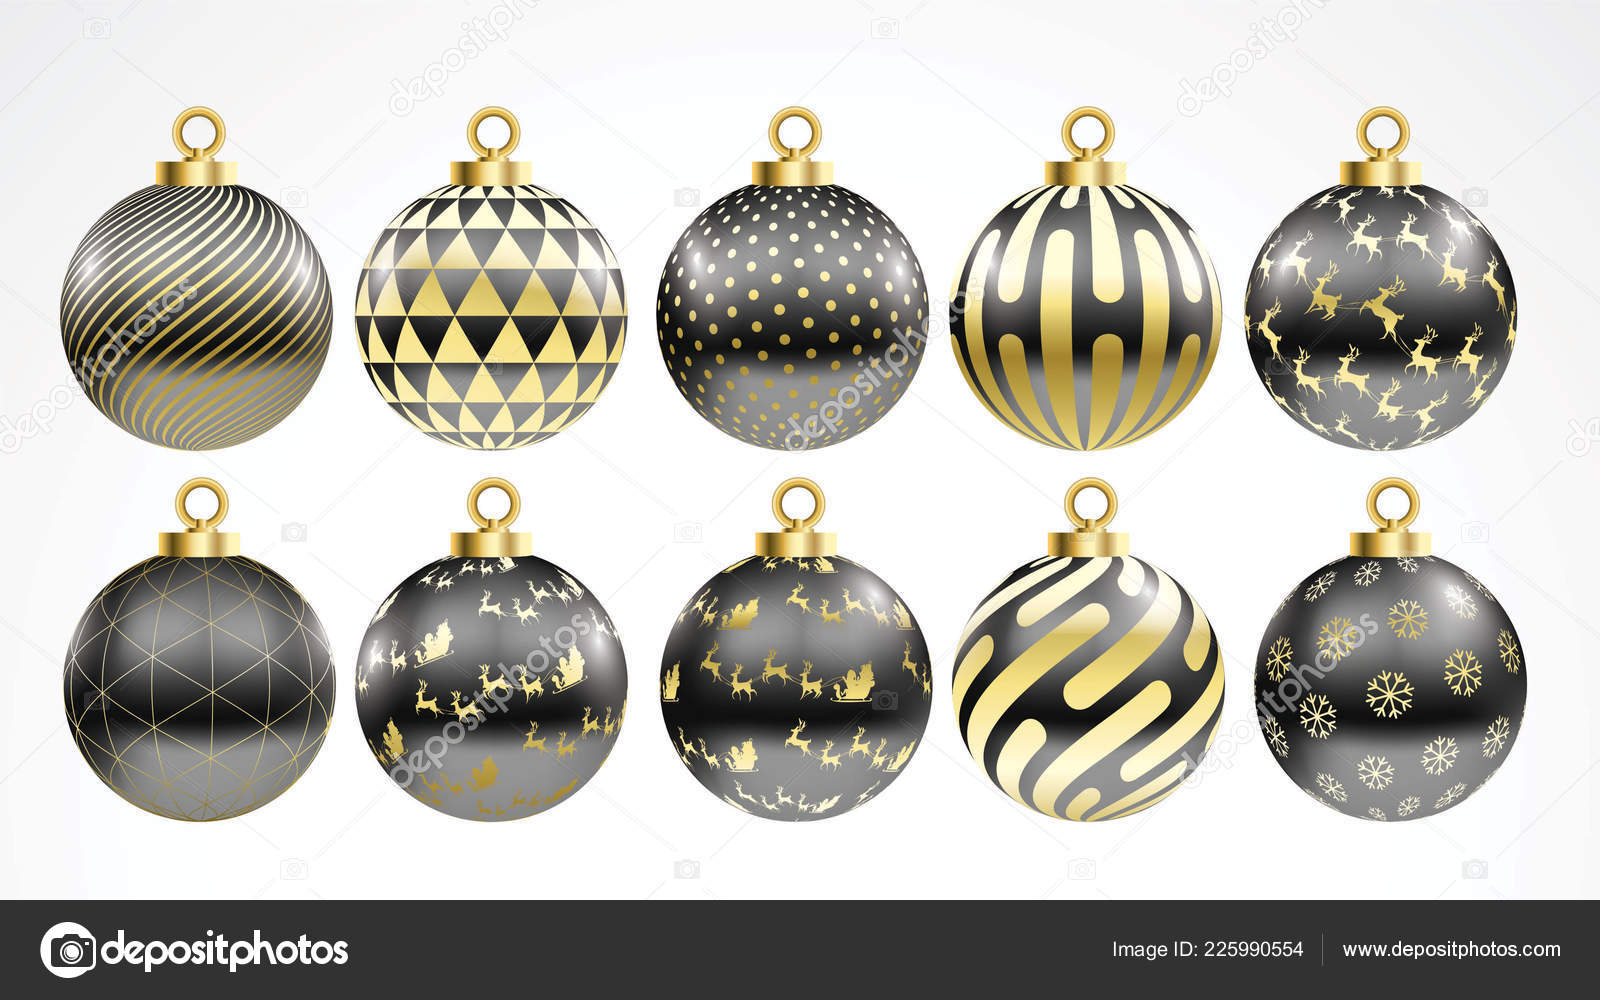 Set Vector Gold Black Christmas Balls Ornaments Golden Collection